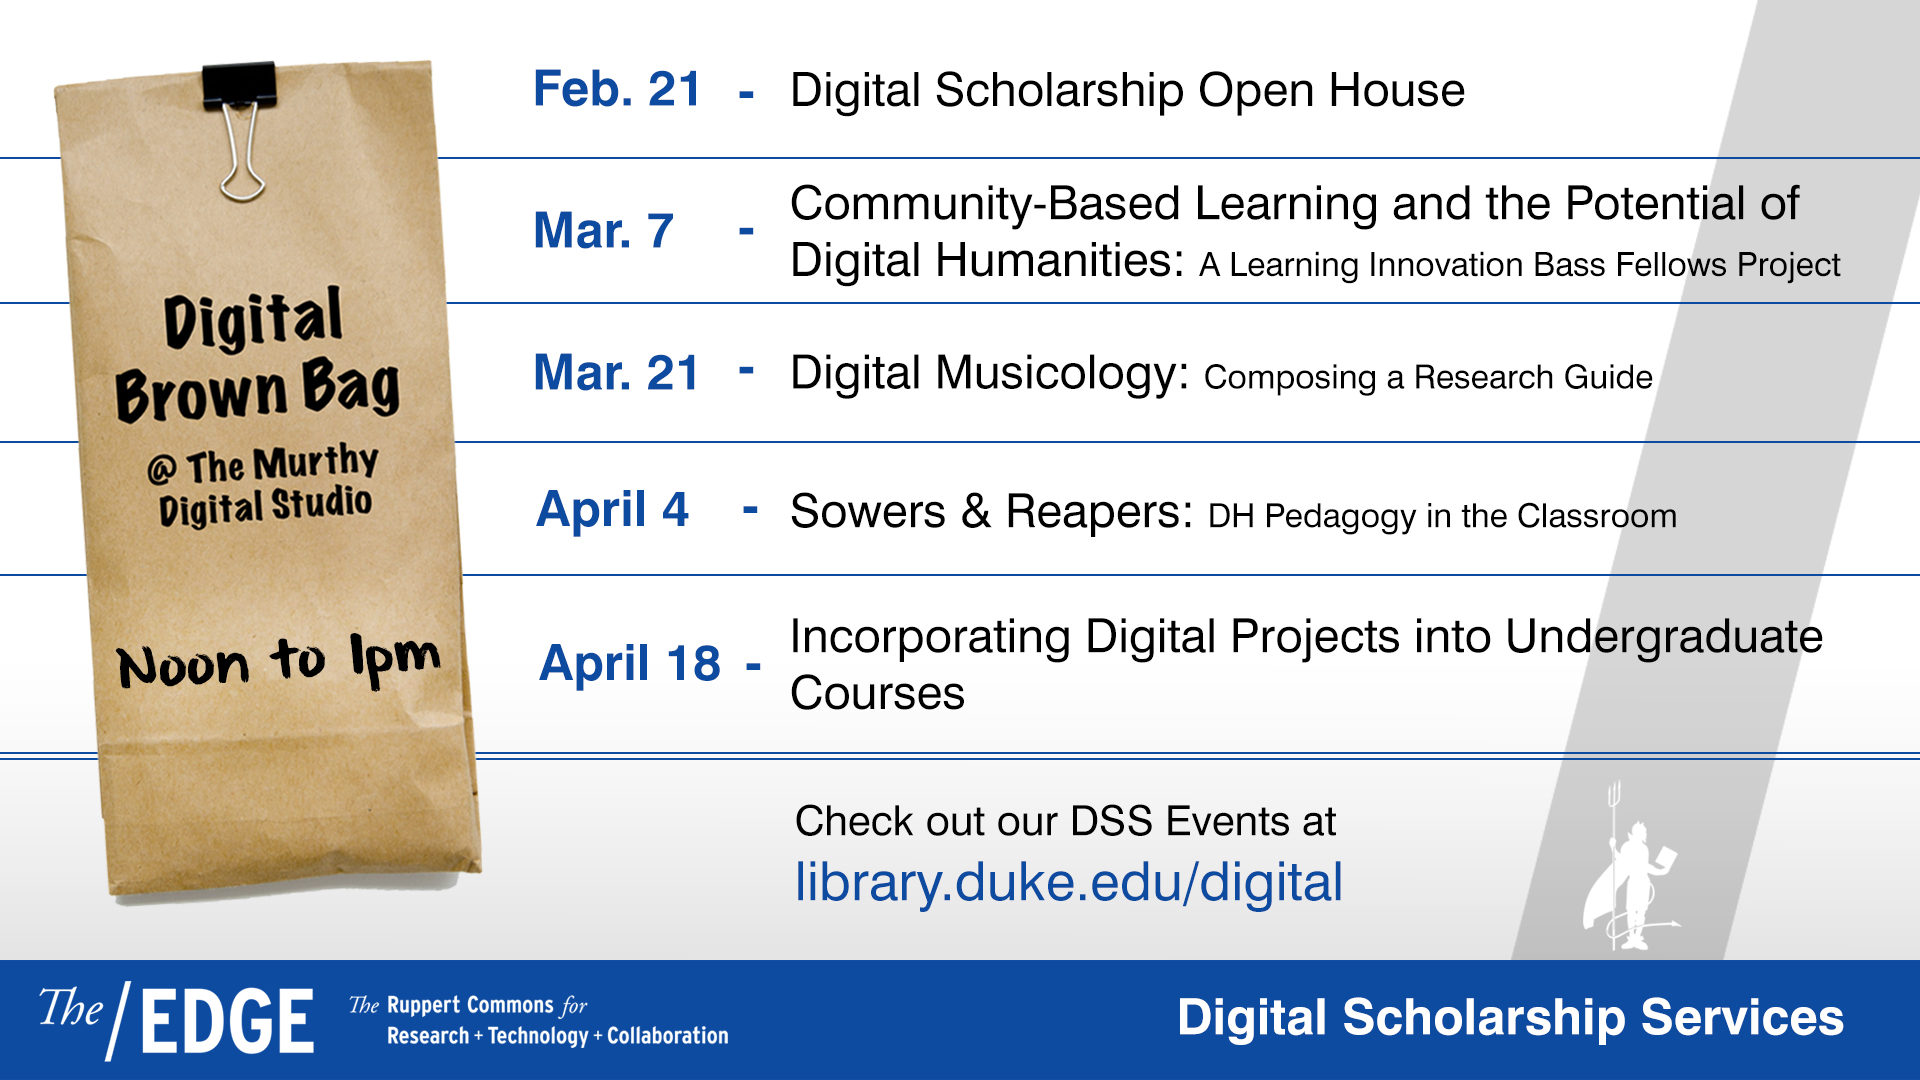 Digital Brown Bag: Incorporating Digital Projects into Undergraduate Courses